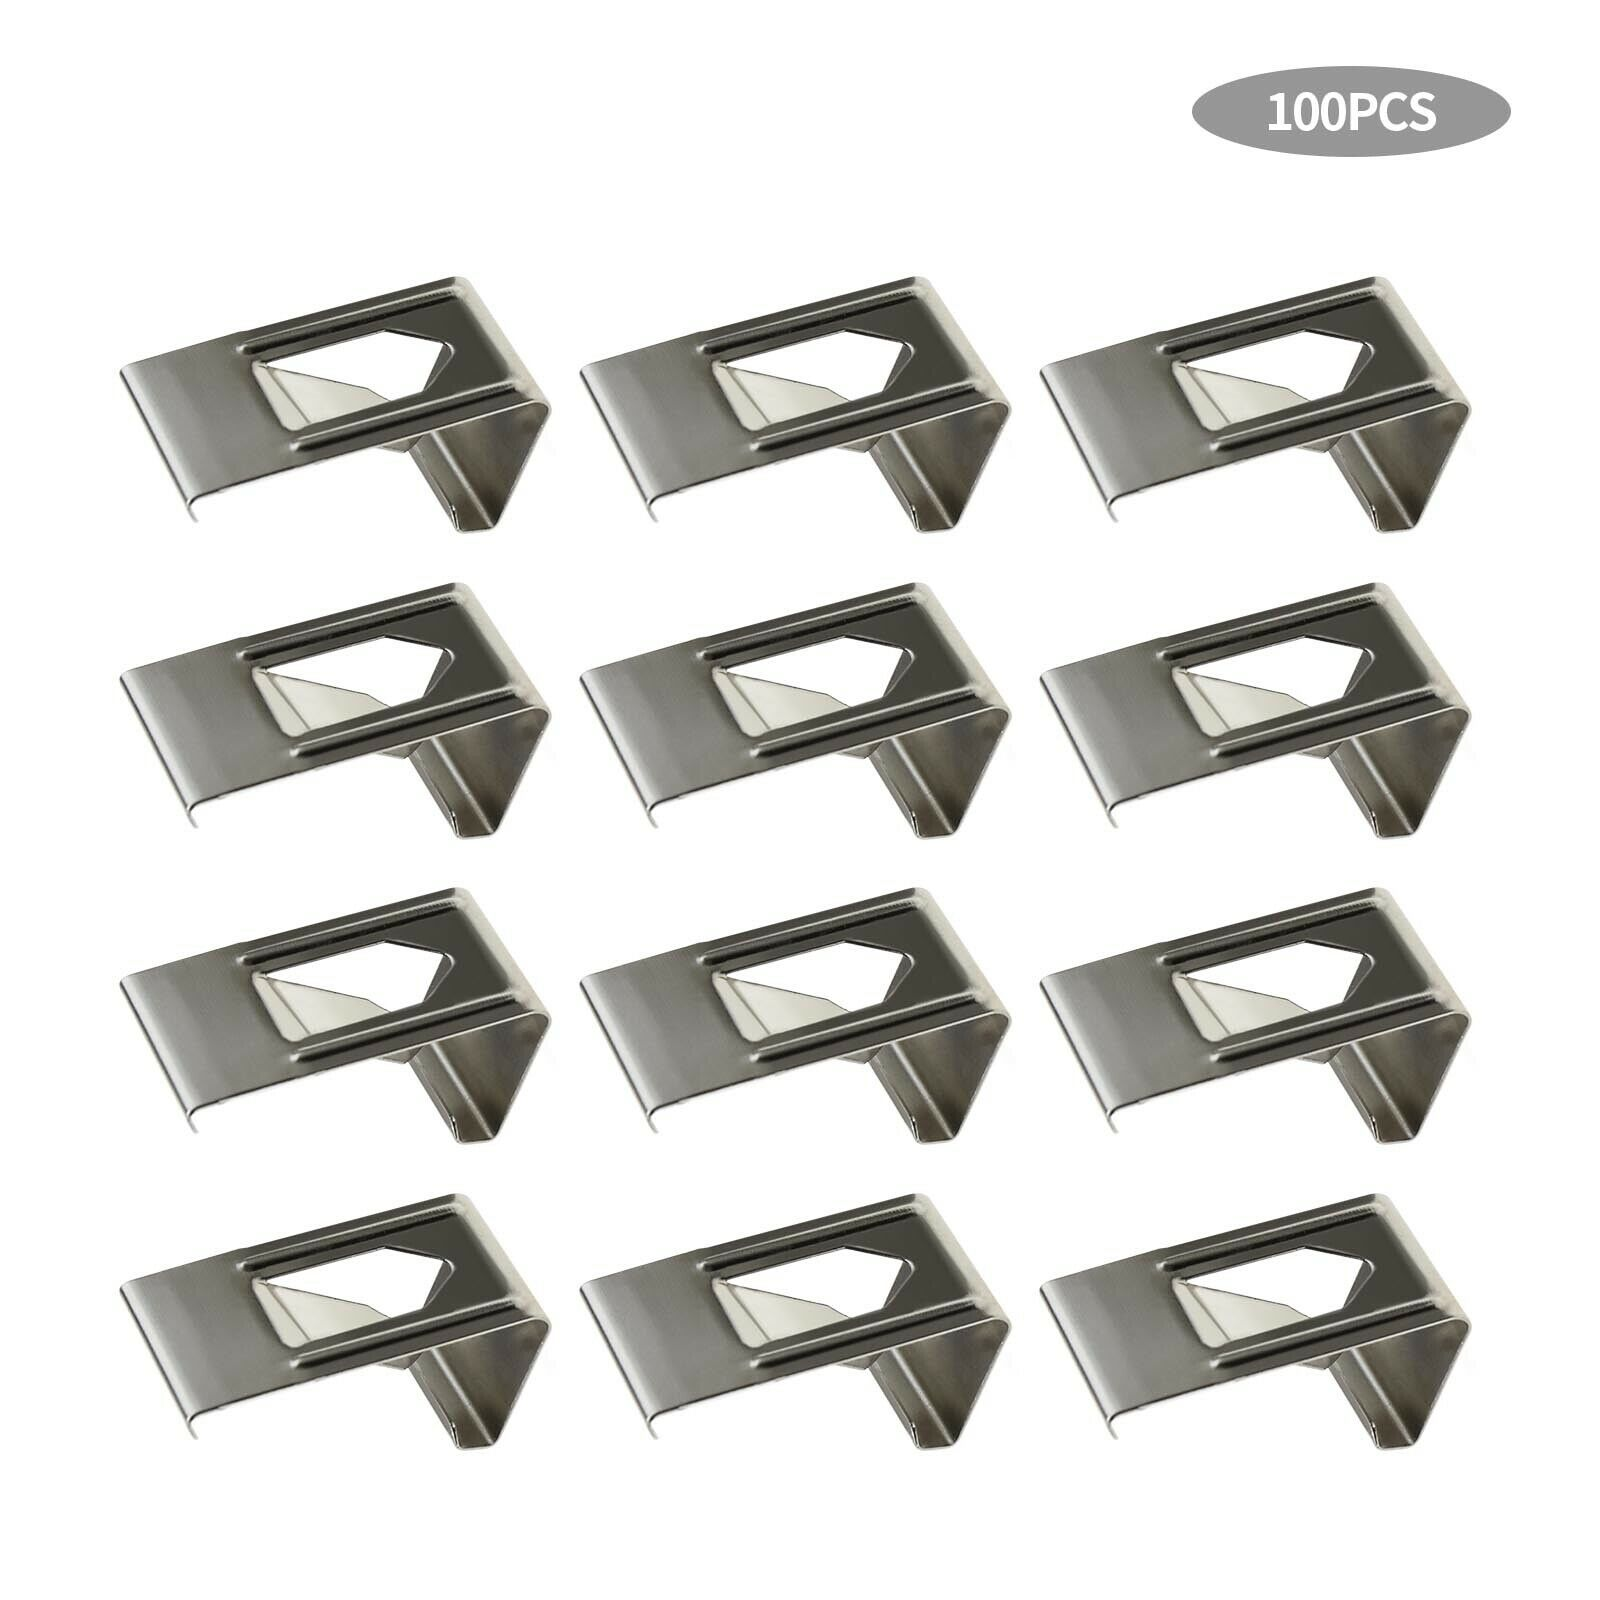 100Pcs Silver Spring Turn Clips Holders for 3D Printer Heated Bed Fixation